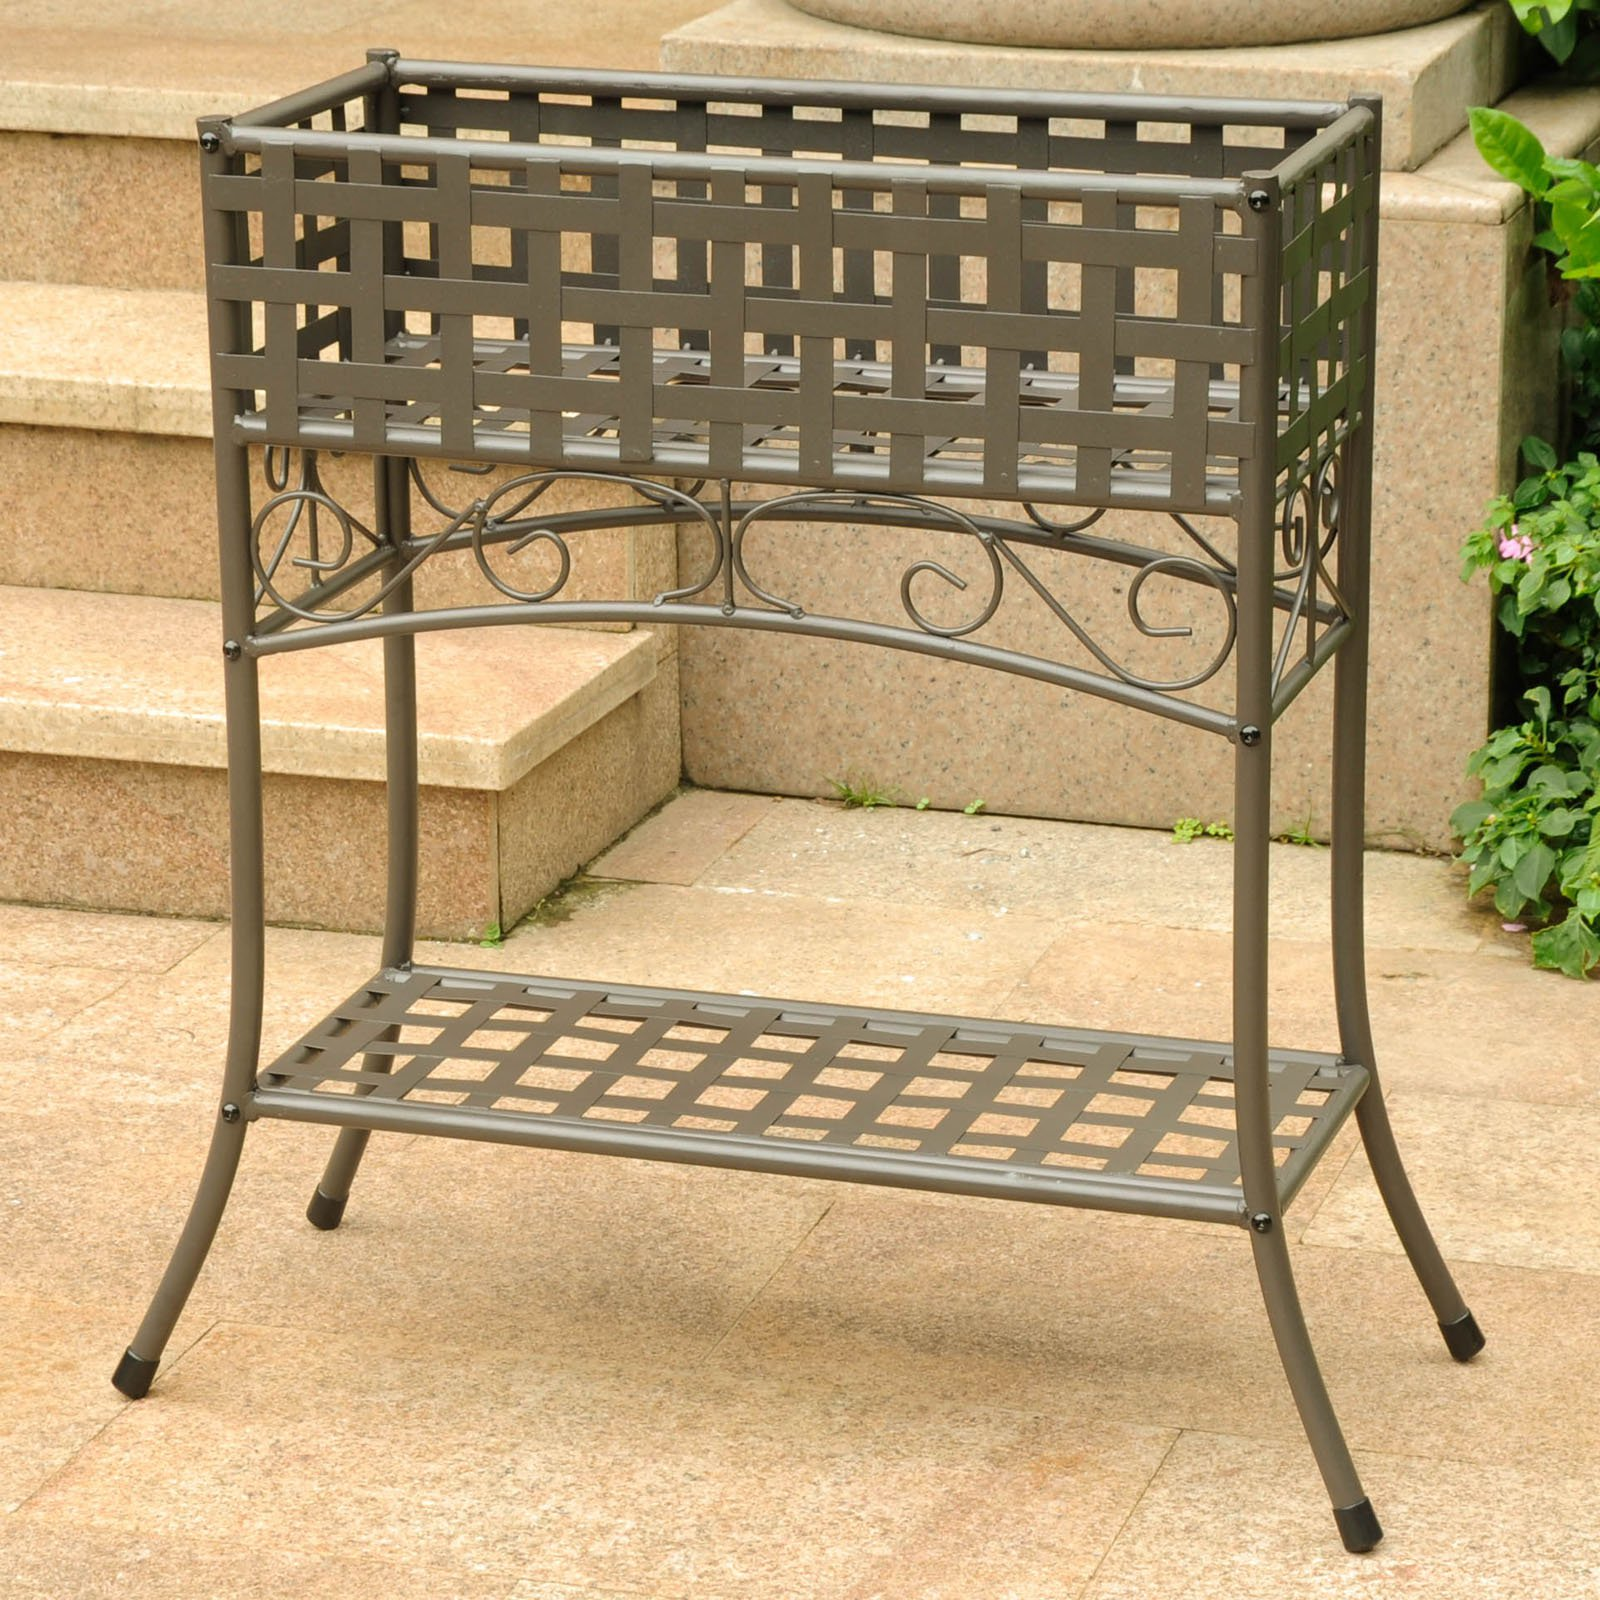 International Caravan Galleria Outdoor Plant Stand - Walmart.com